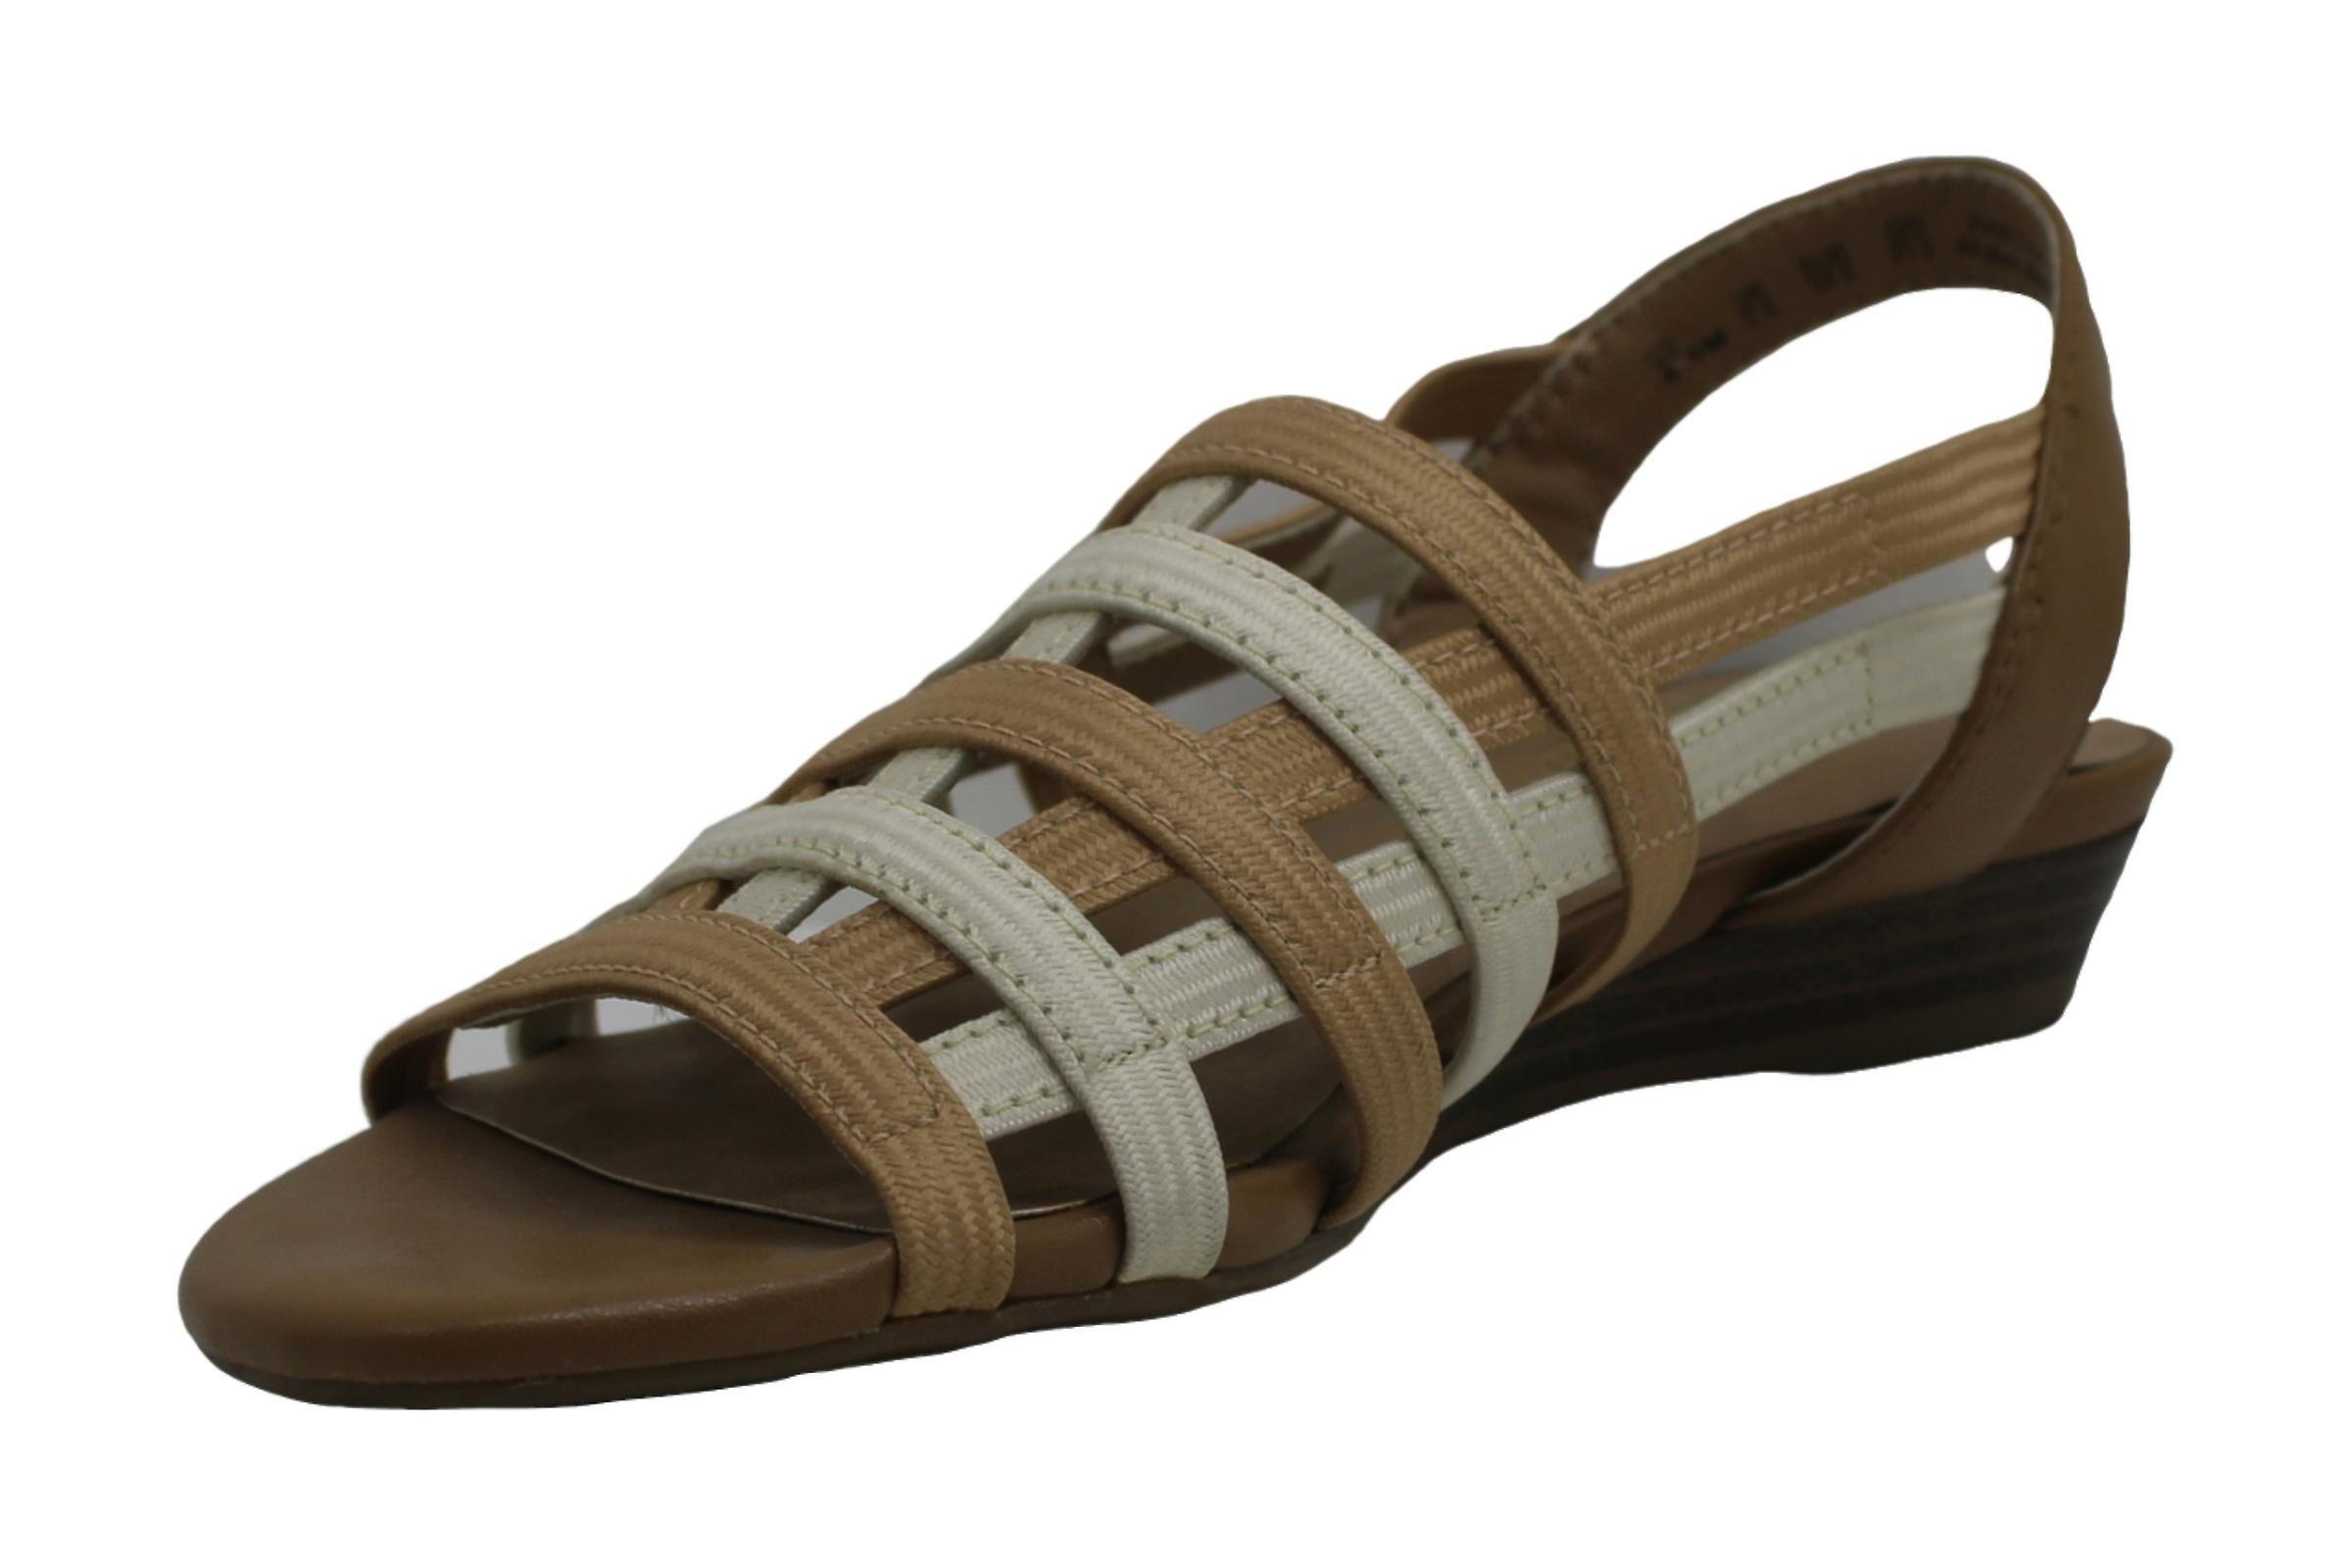 Naturalizer Womens E7752L5 Leather Open Toe Casual Slingback Sandals